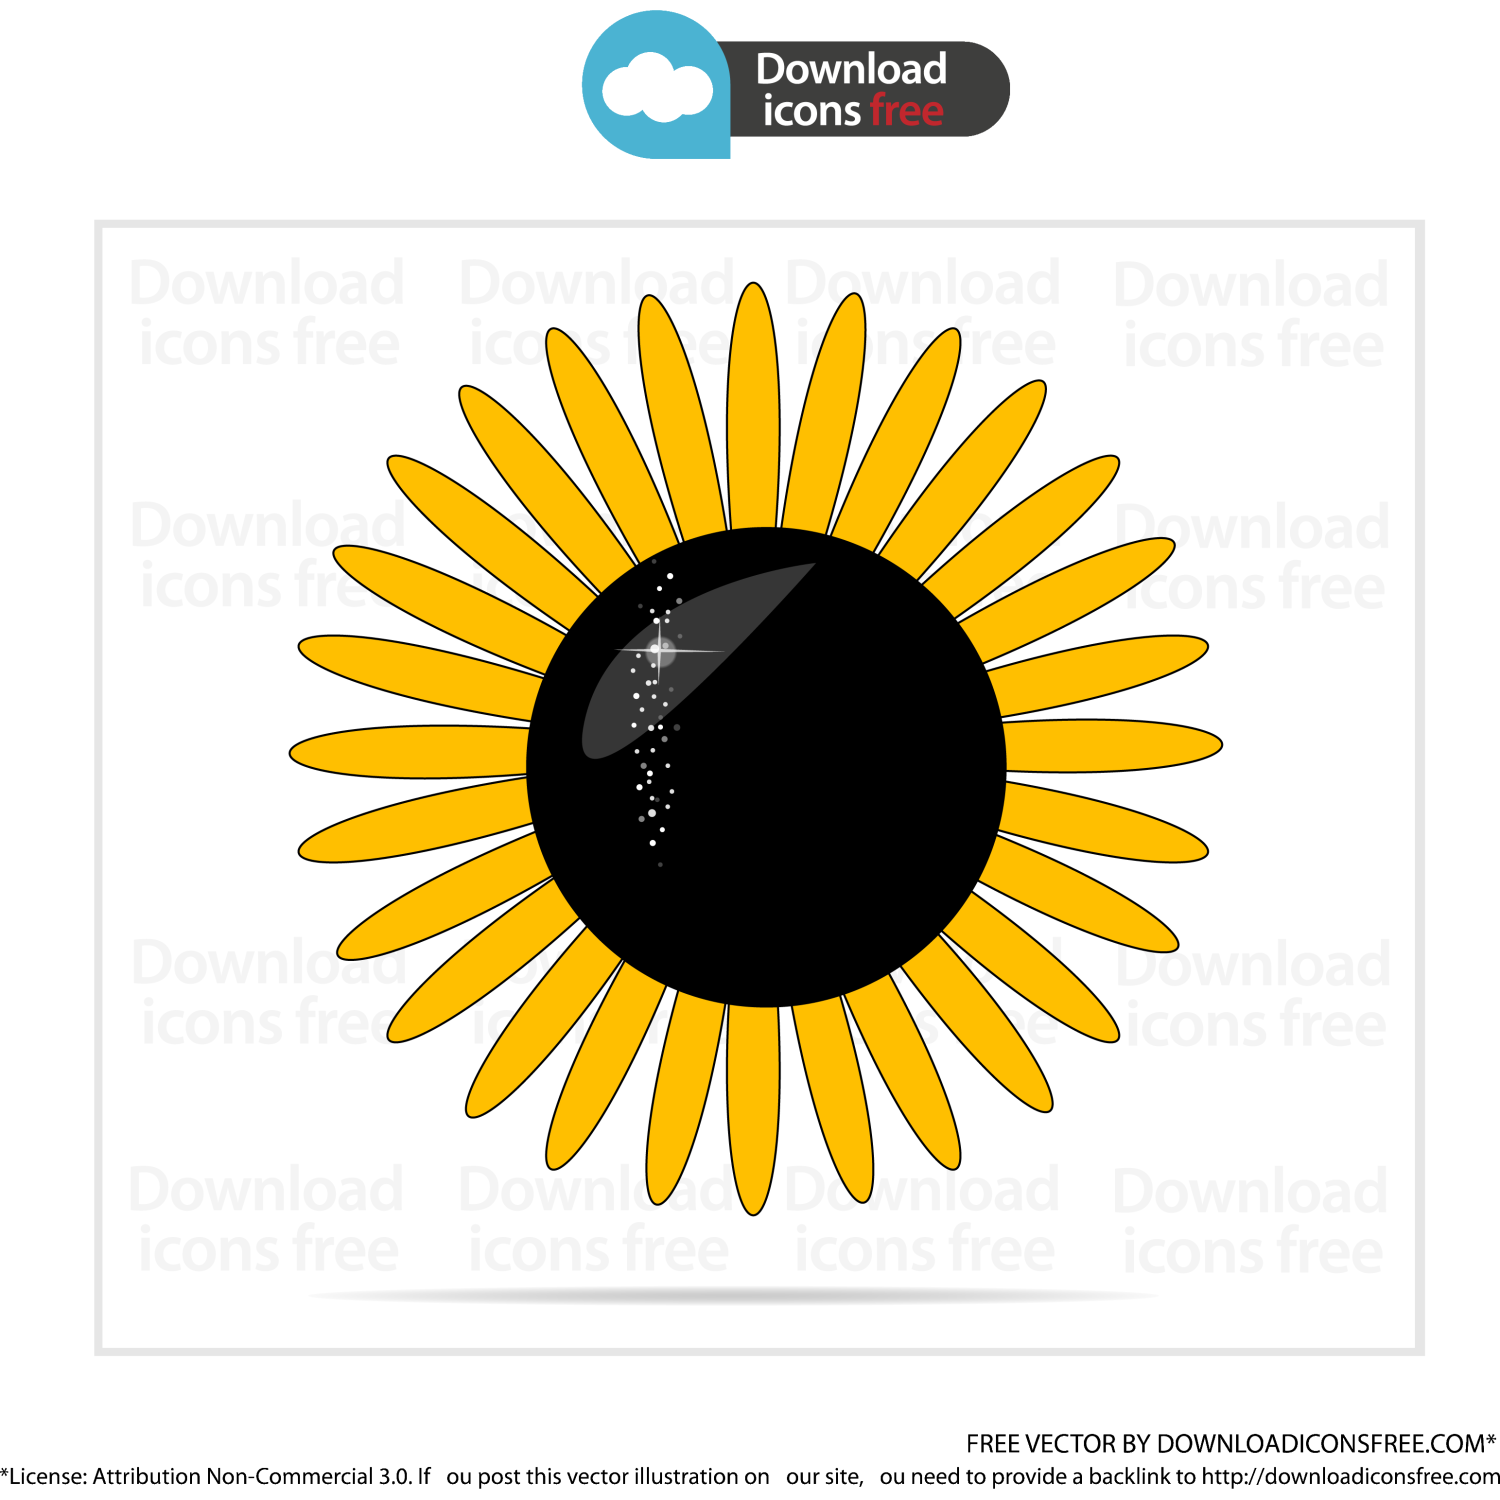 Download free vector sunflower